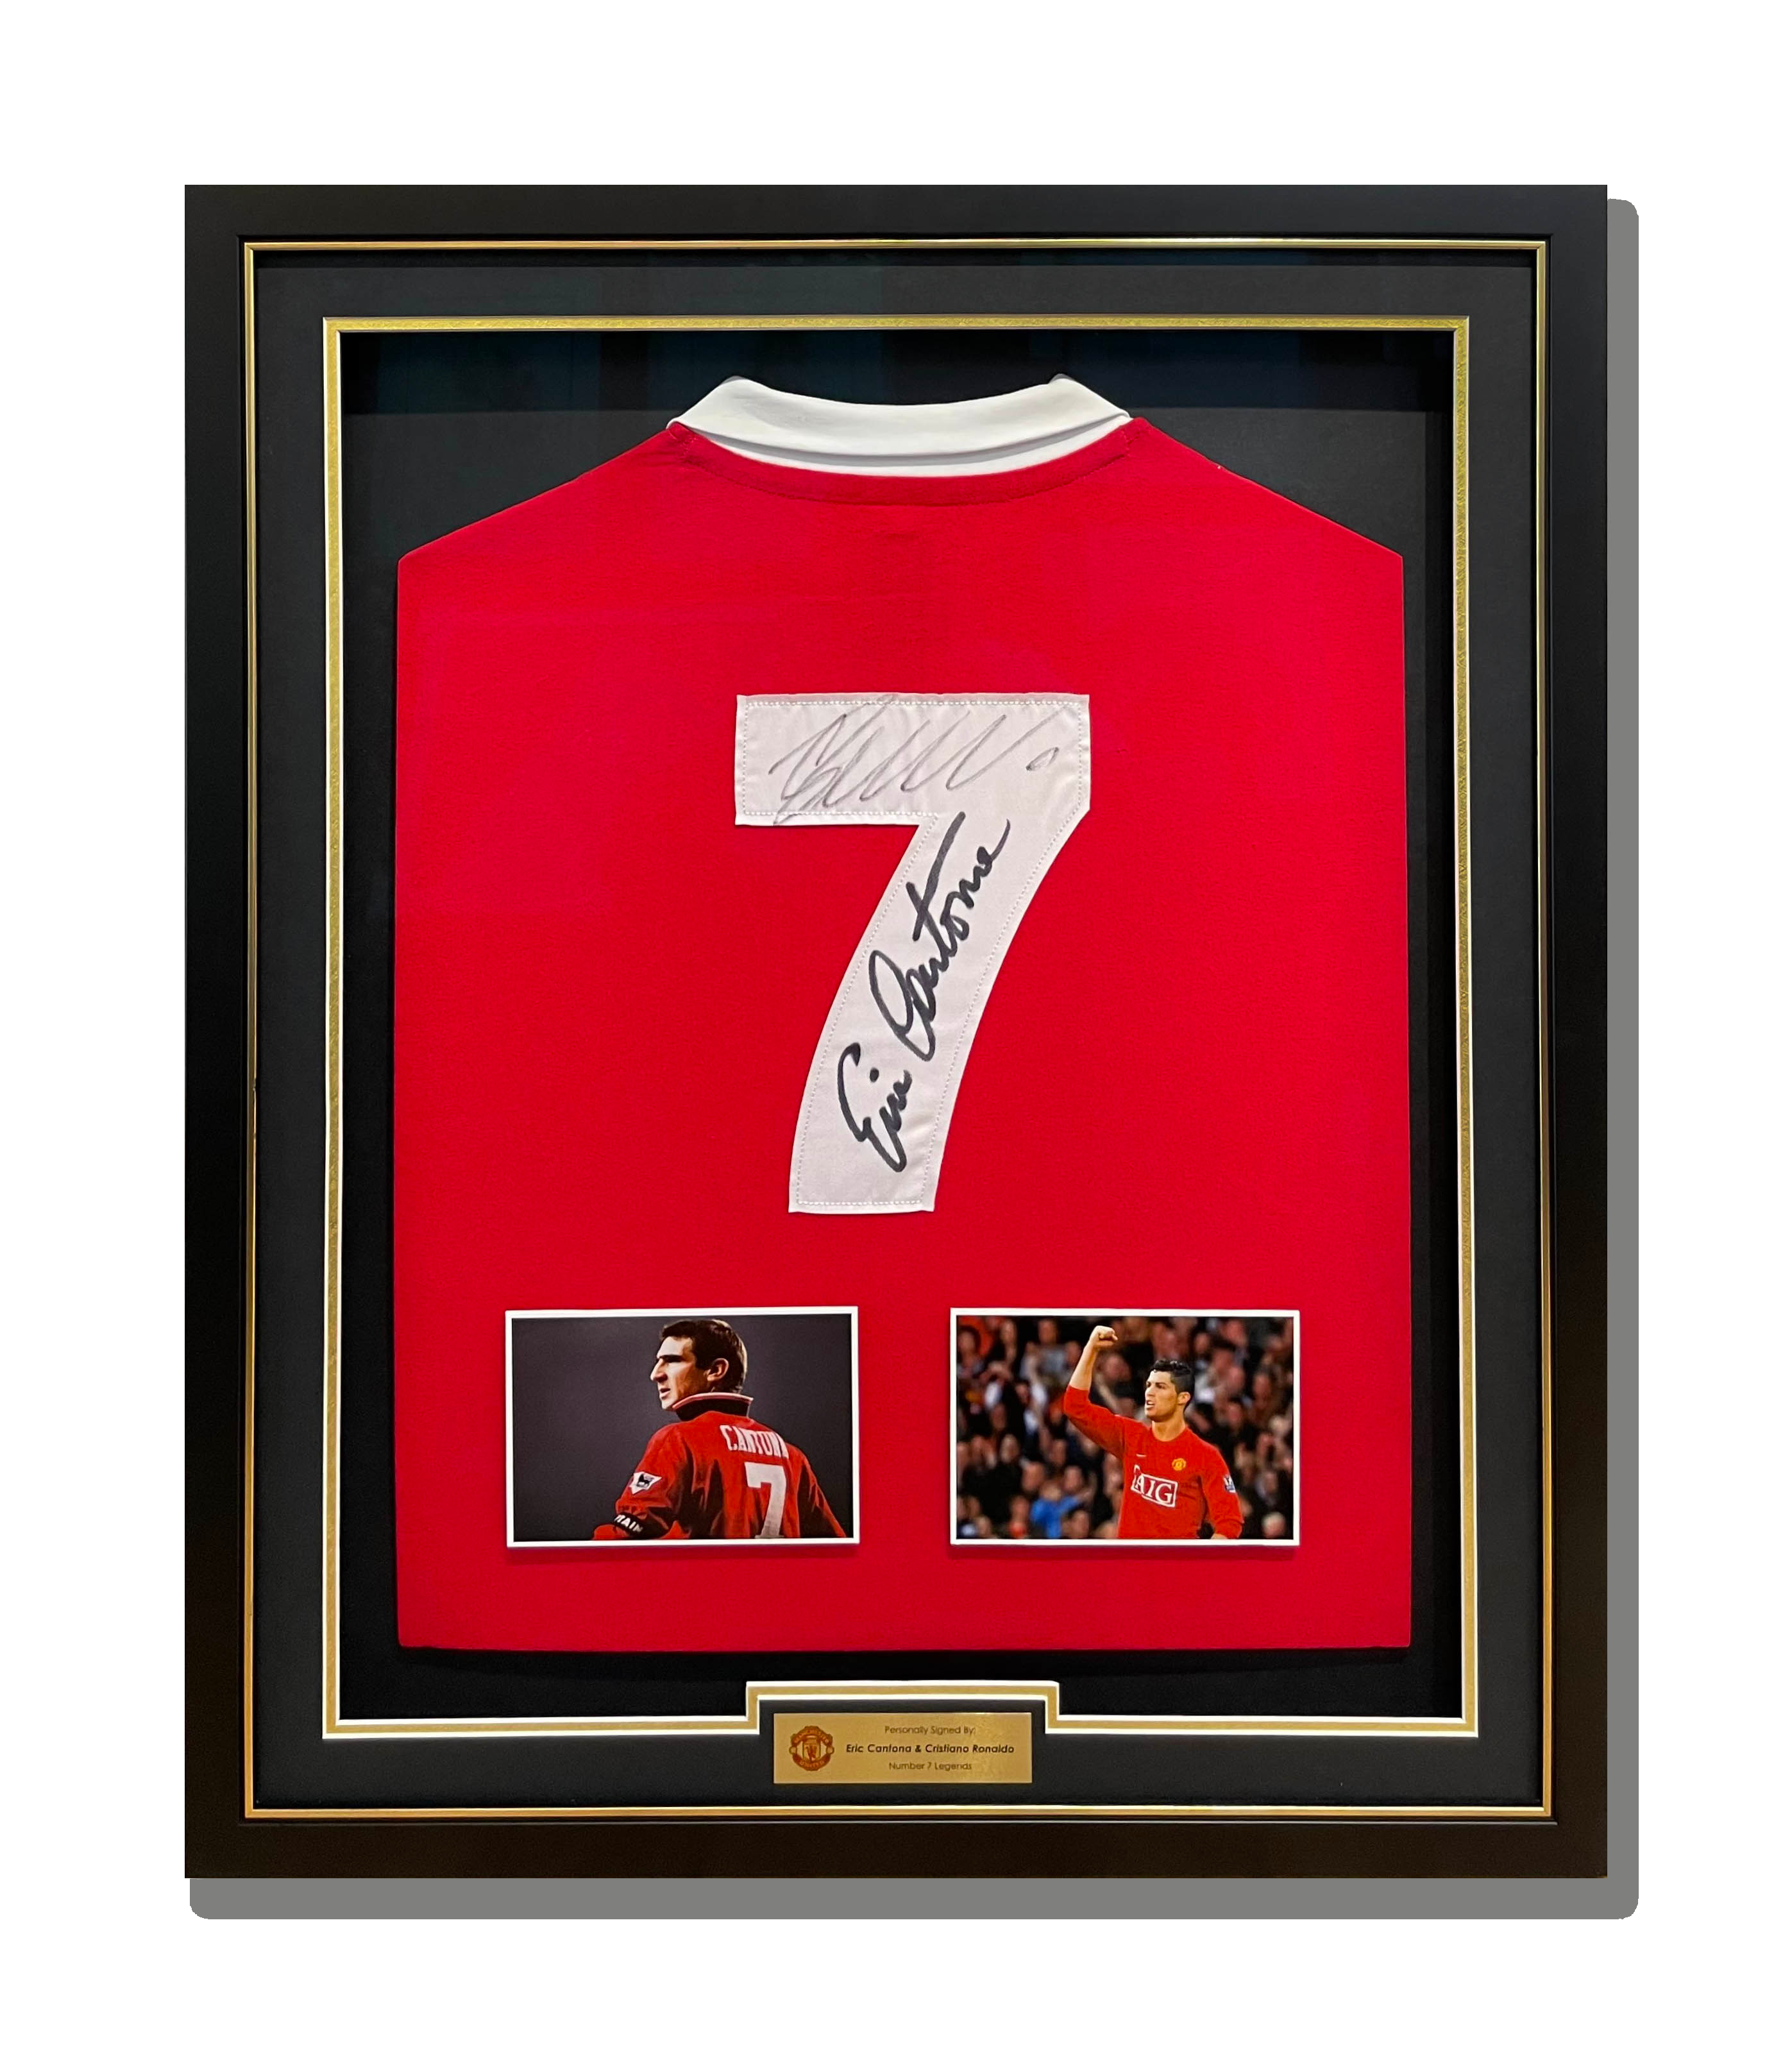 Eric Cantona Manchester United Signed Jersey Shadow Box Framing Black Matboard Gold Trim Matte Black Frame Mounted Photos Engraved Plate